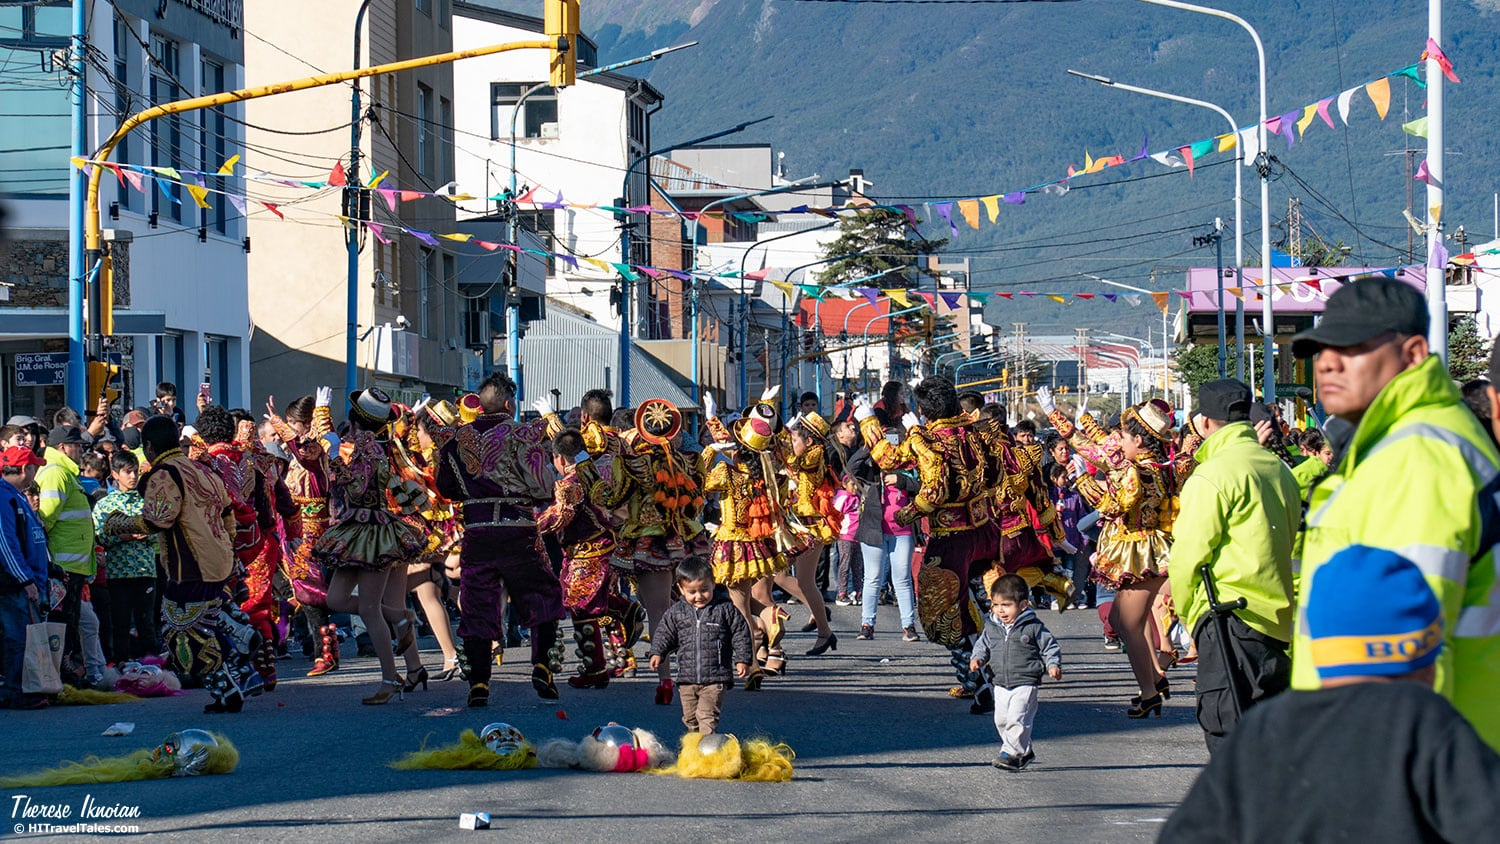 The parade takes over the main thoroughfare of Ushuaia, then ends in the oceanside park and parking lots for continued partying.